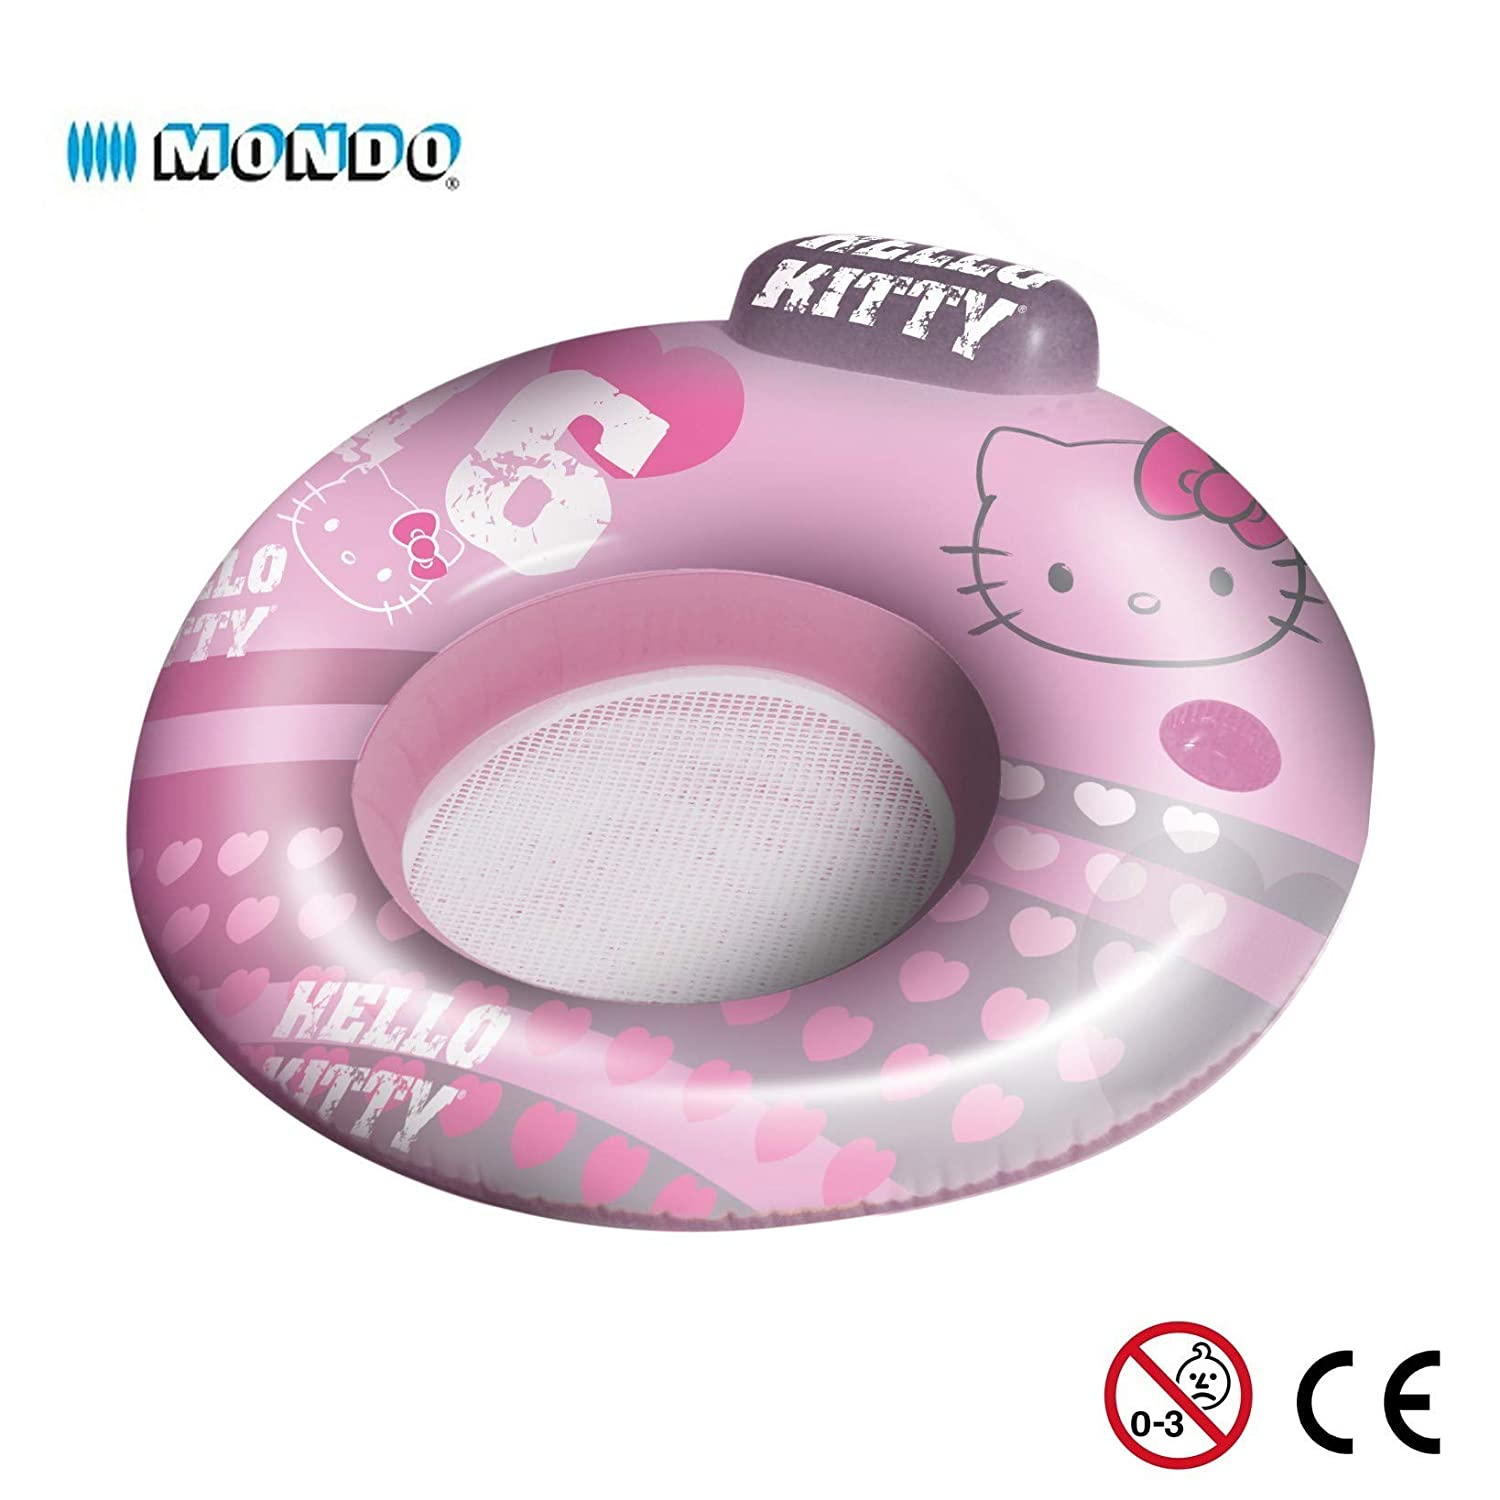 Silla hinchable reposacabezas 2 en 1 Hello Kitty 104 cm flotante ...